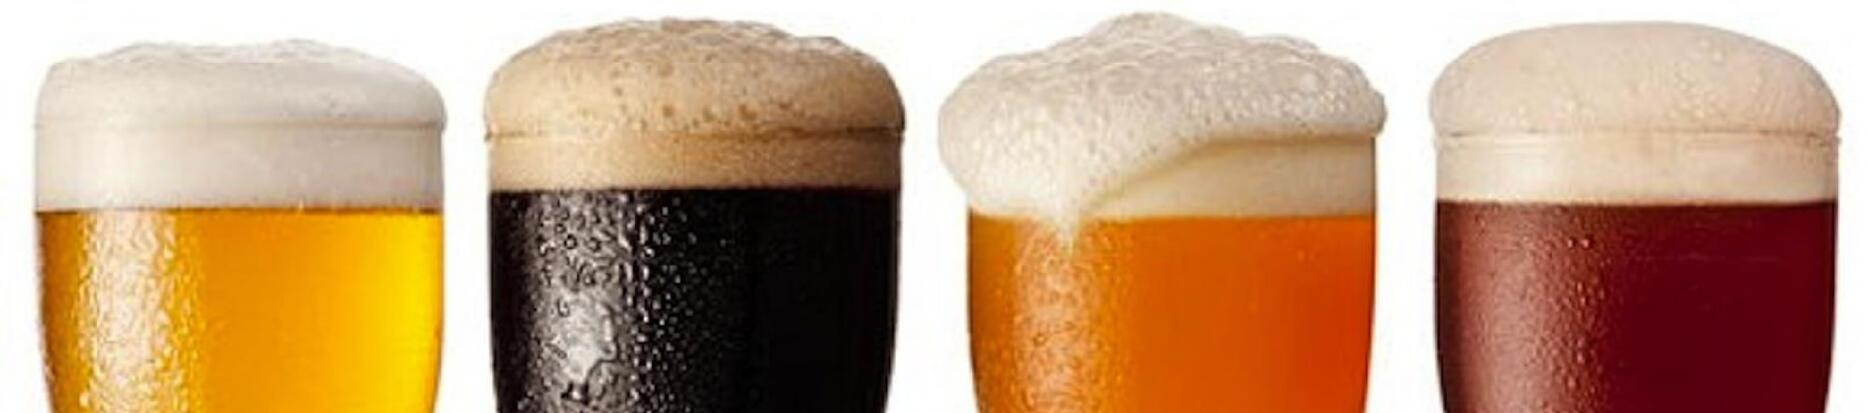 "Angebot ""Beer Attraction 2015"" in Fiera di Rimini"